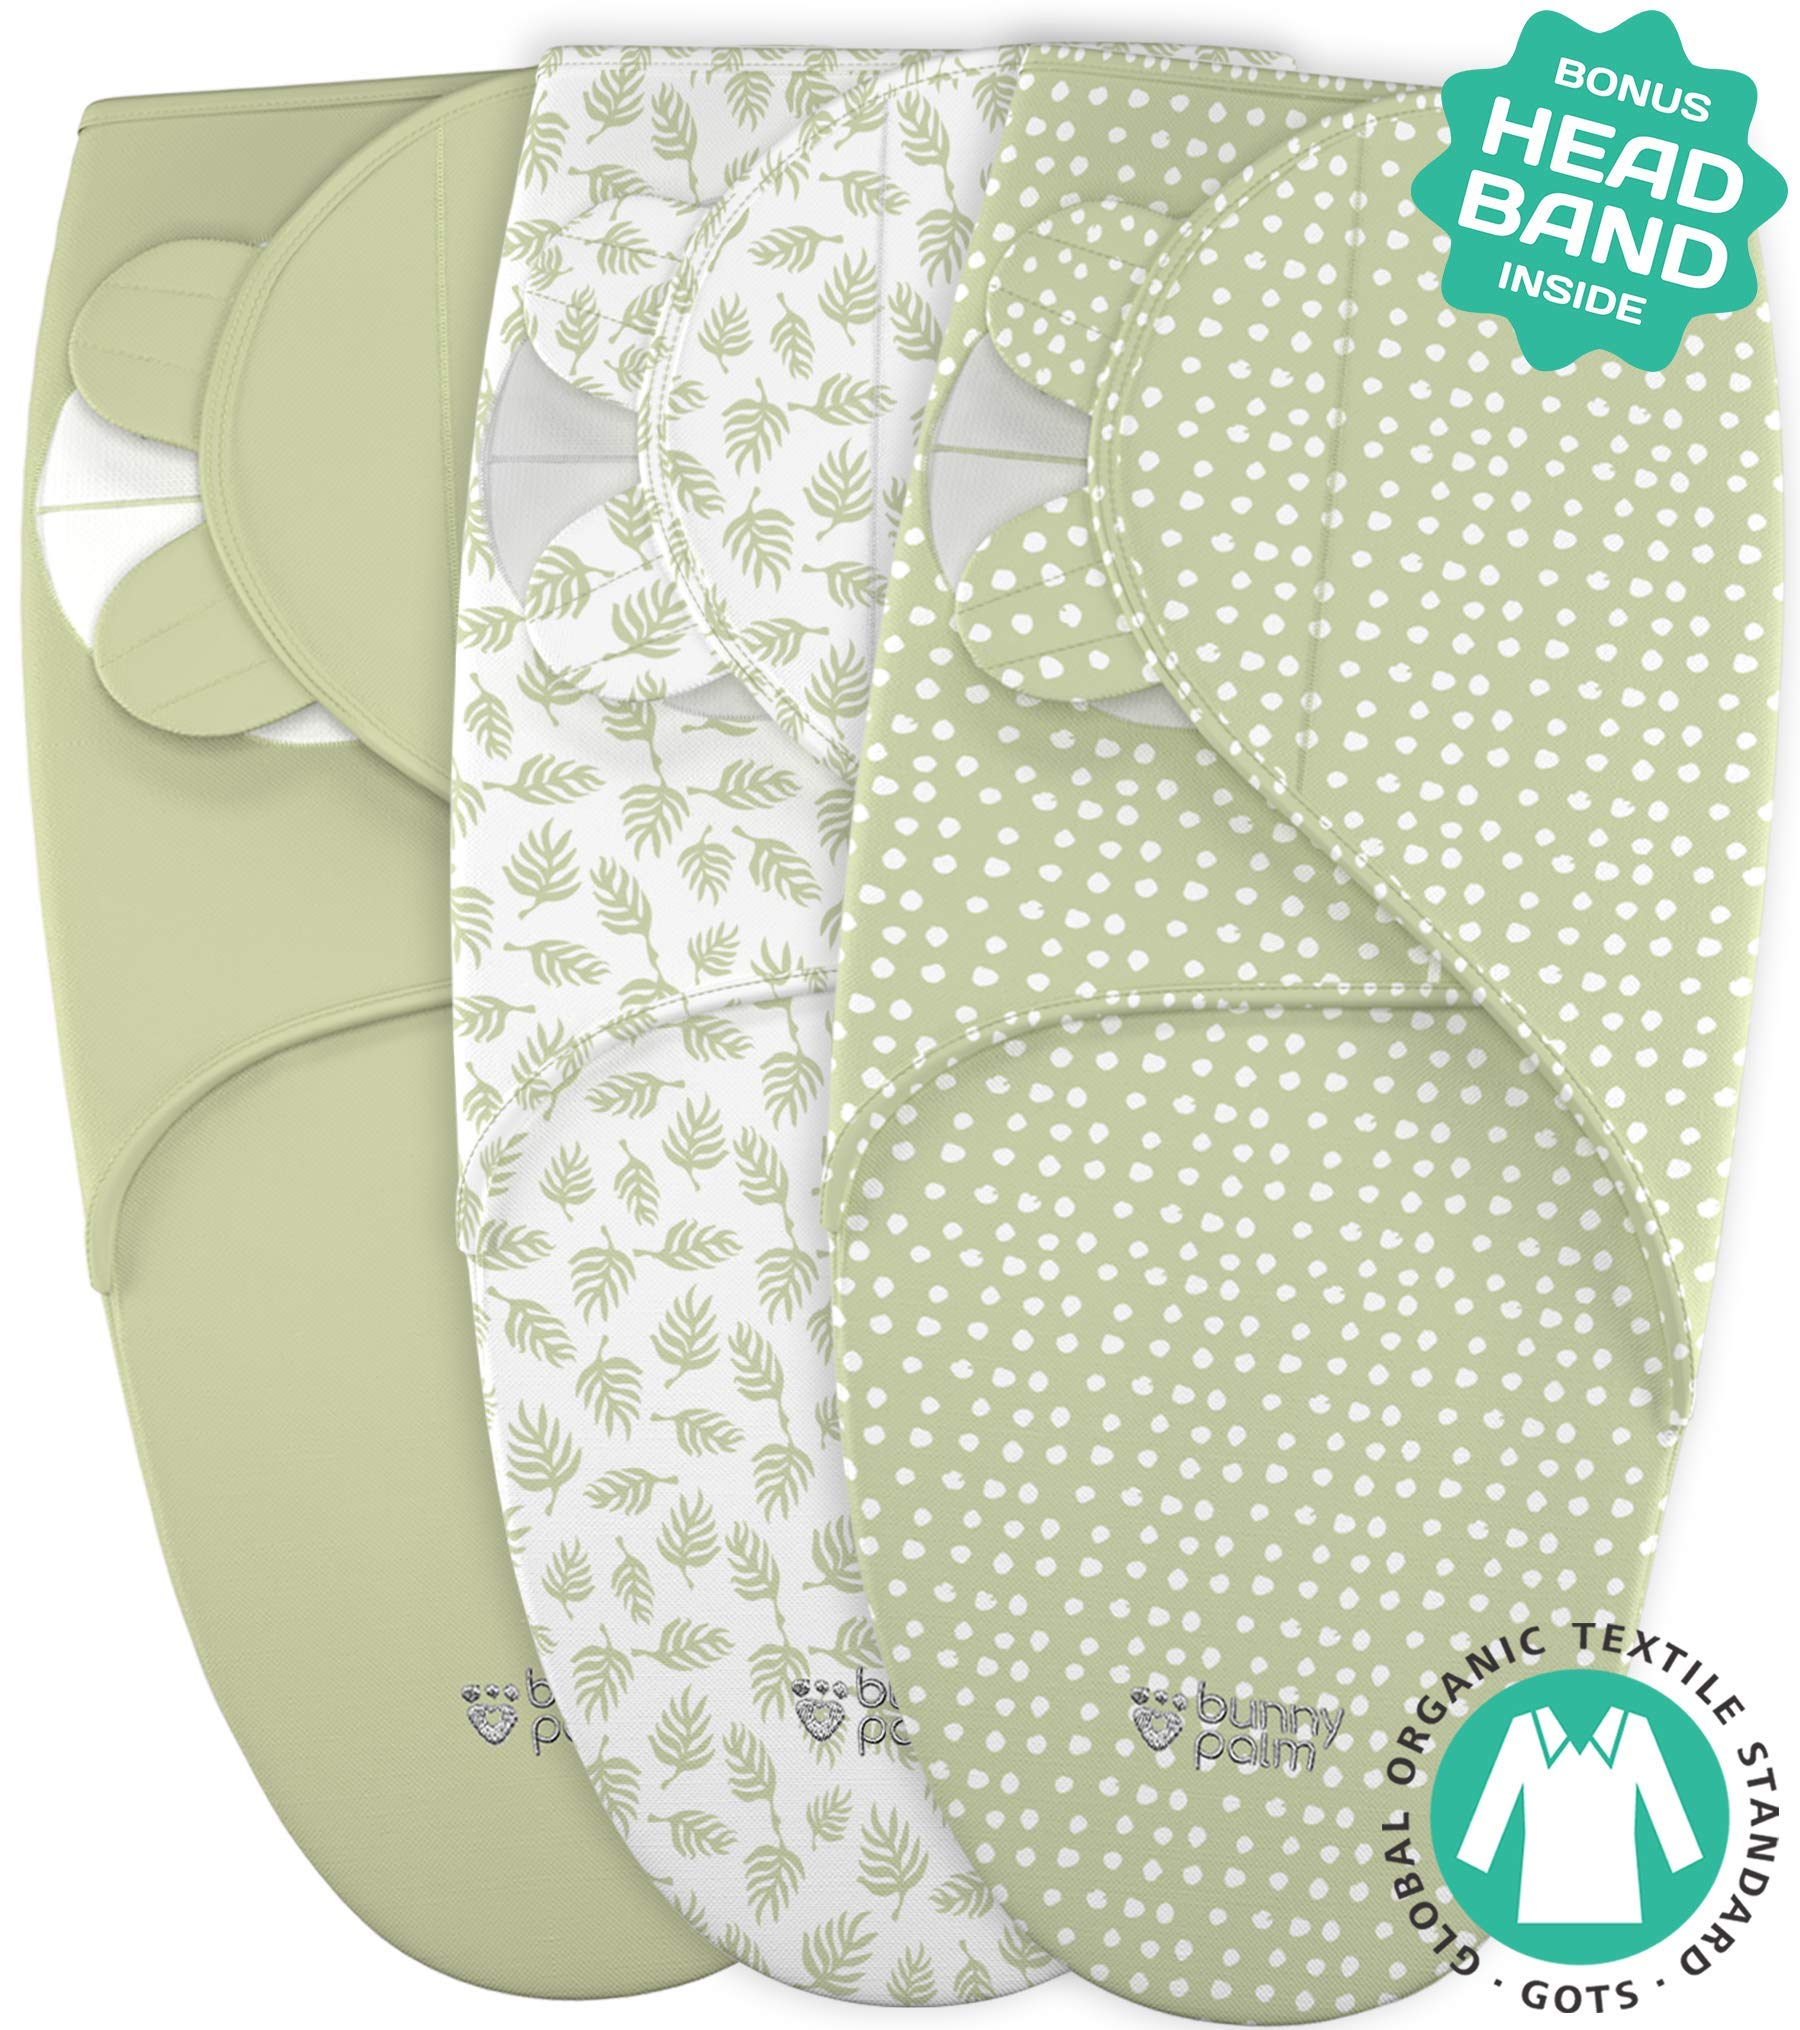 Swaddle Blanket for Baby, Newborn Boy or Girl Adjustable Sleepsack, Unisex, Organic Cotton Swaddle Wrap Set 3 Bags in Pack for Infant, Soft Blankets with Baby Headband